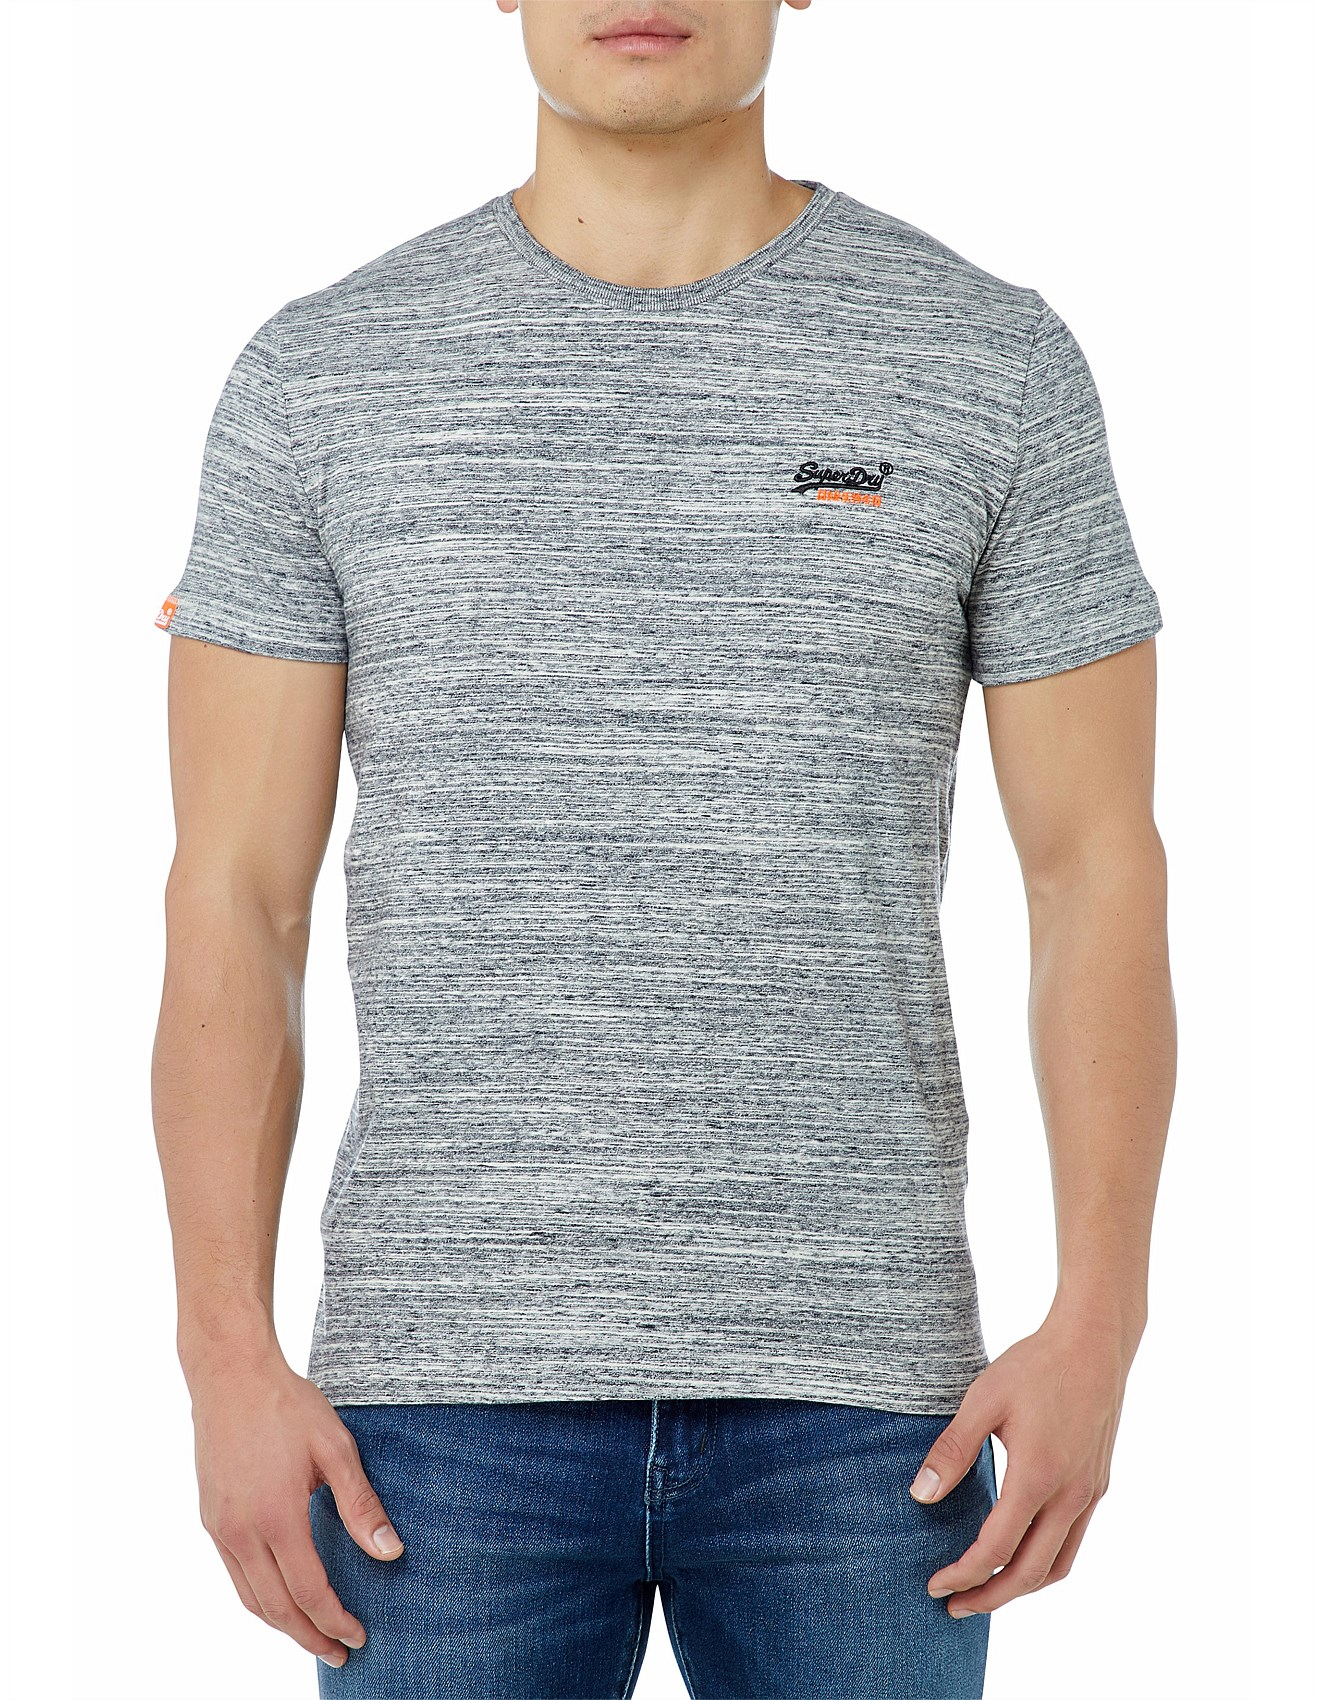 c6d50441 Superdry | Buy Superdry Jackets & Clothing Online | David Jones - Orange  Label Vntge Emb S/S Tee